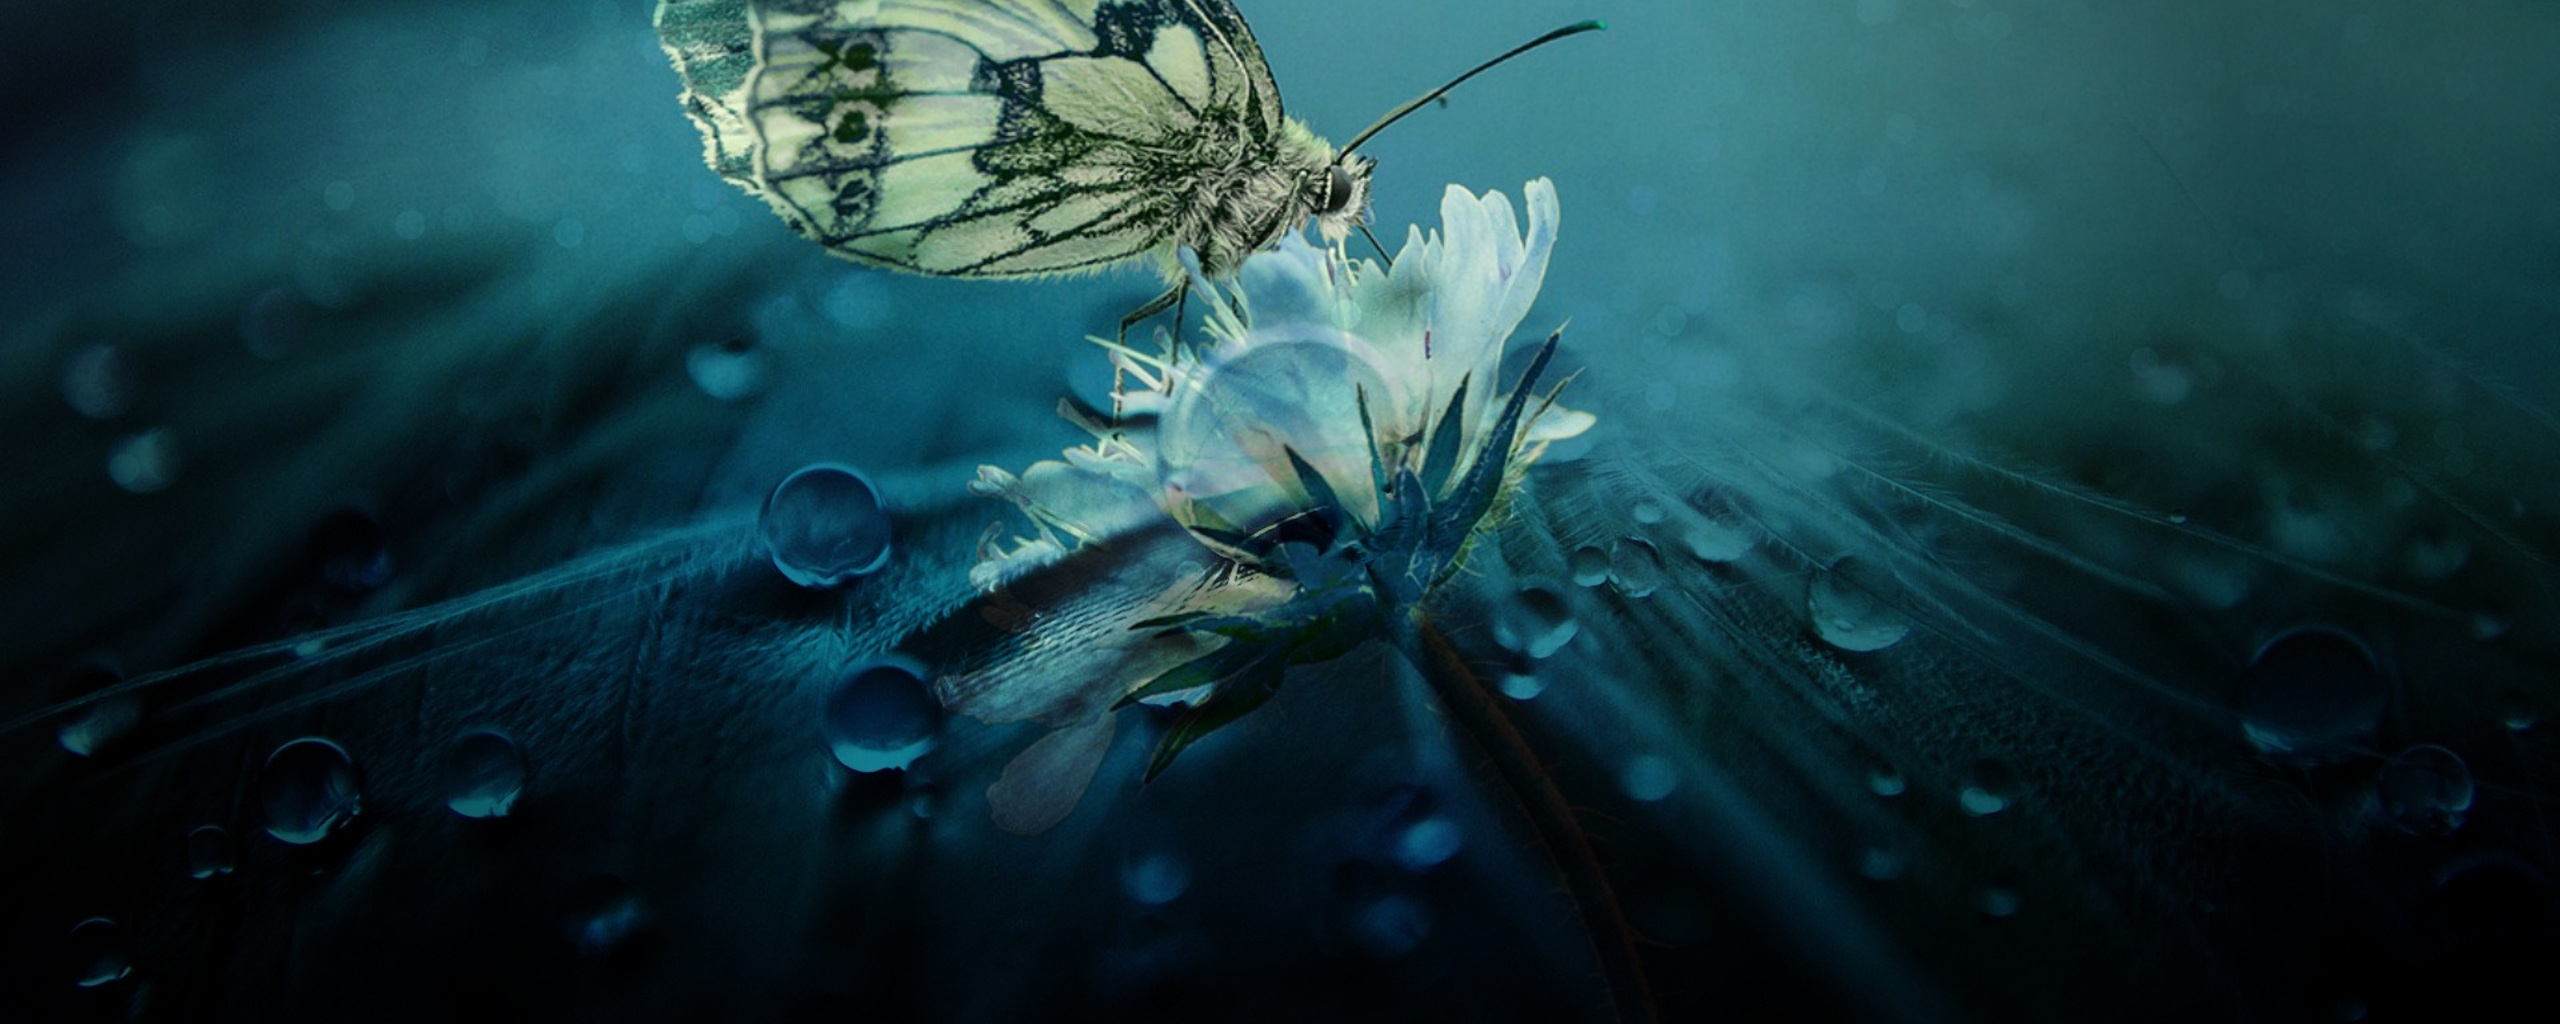 beautiful-butterfly-nature-c1.jpg